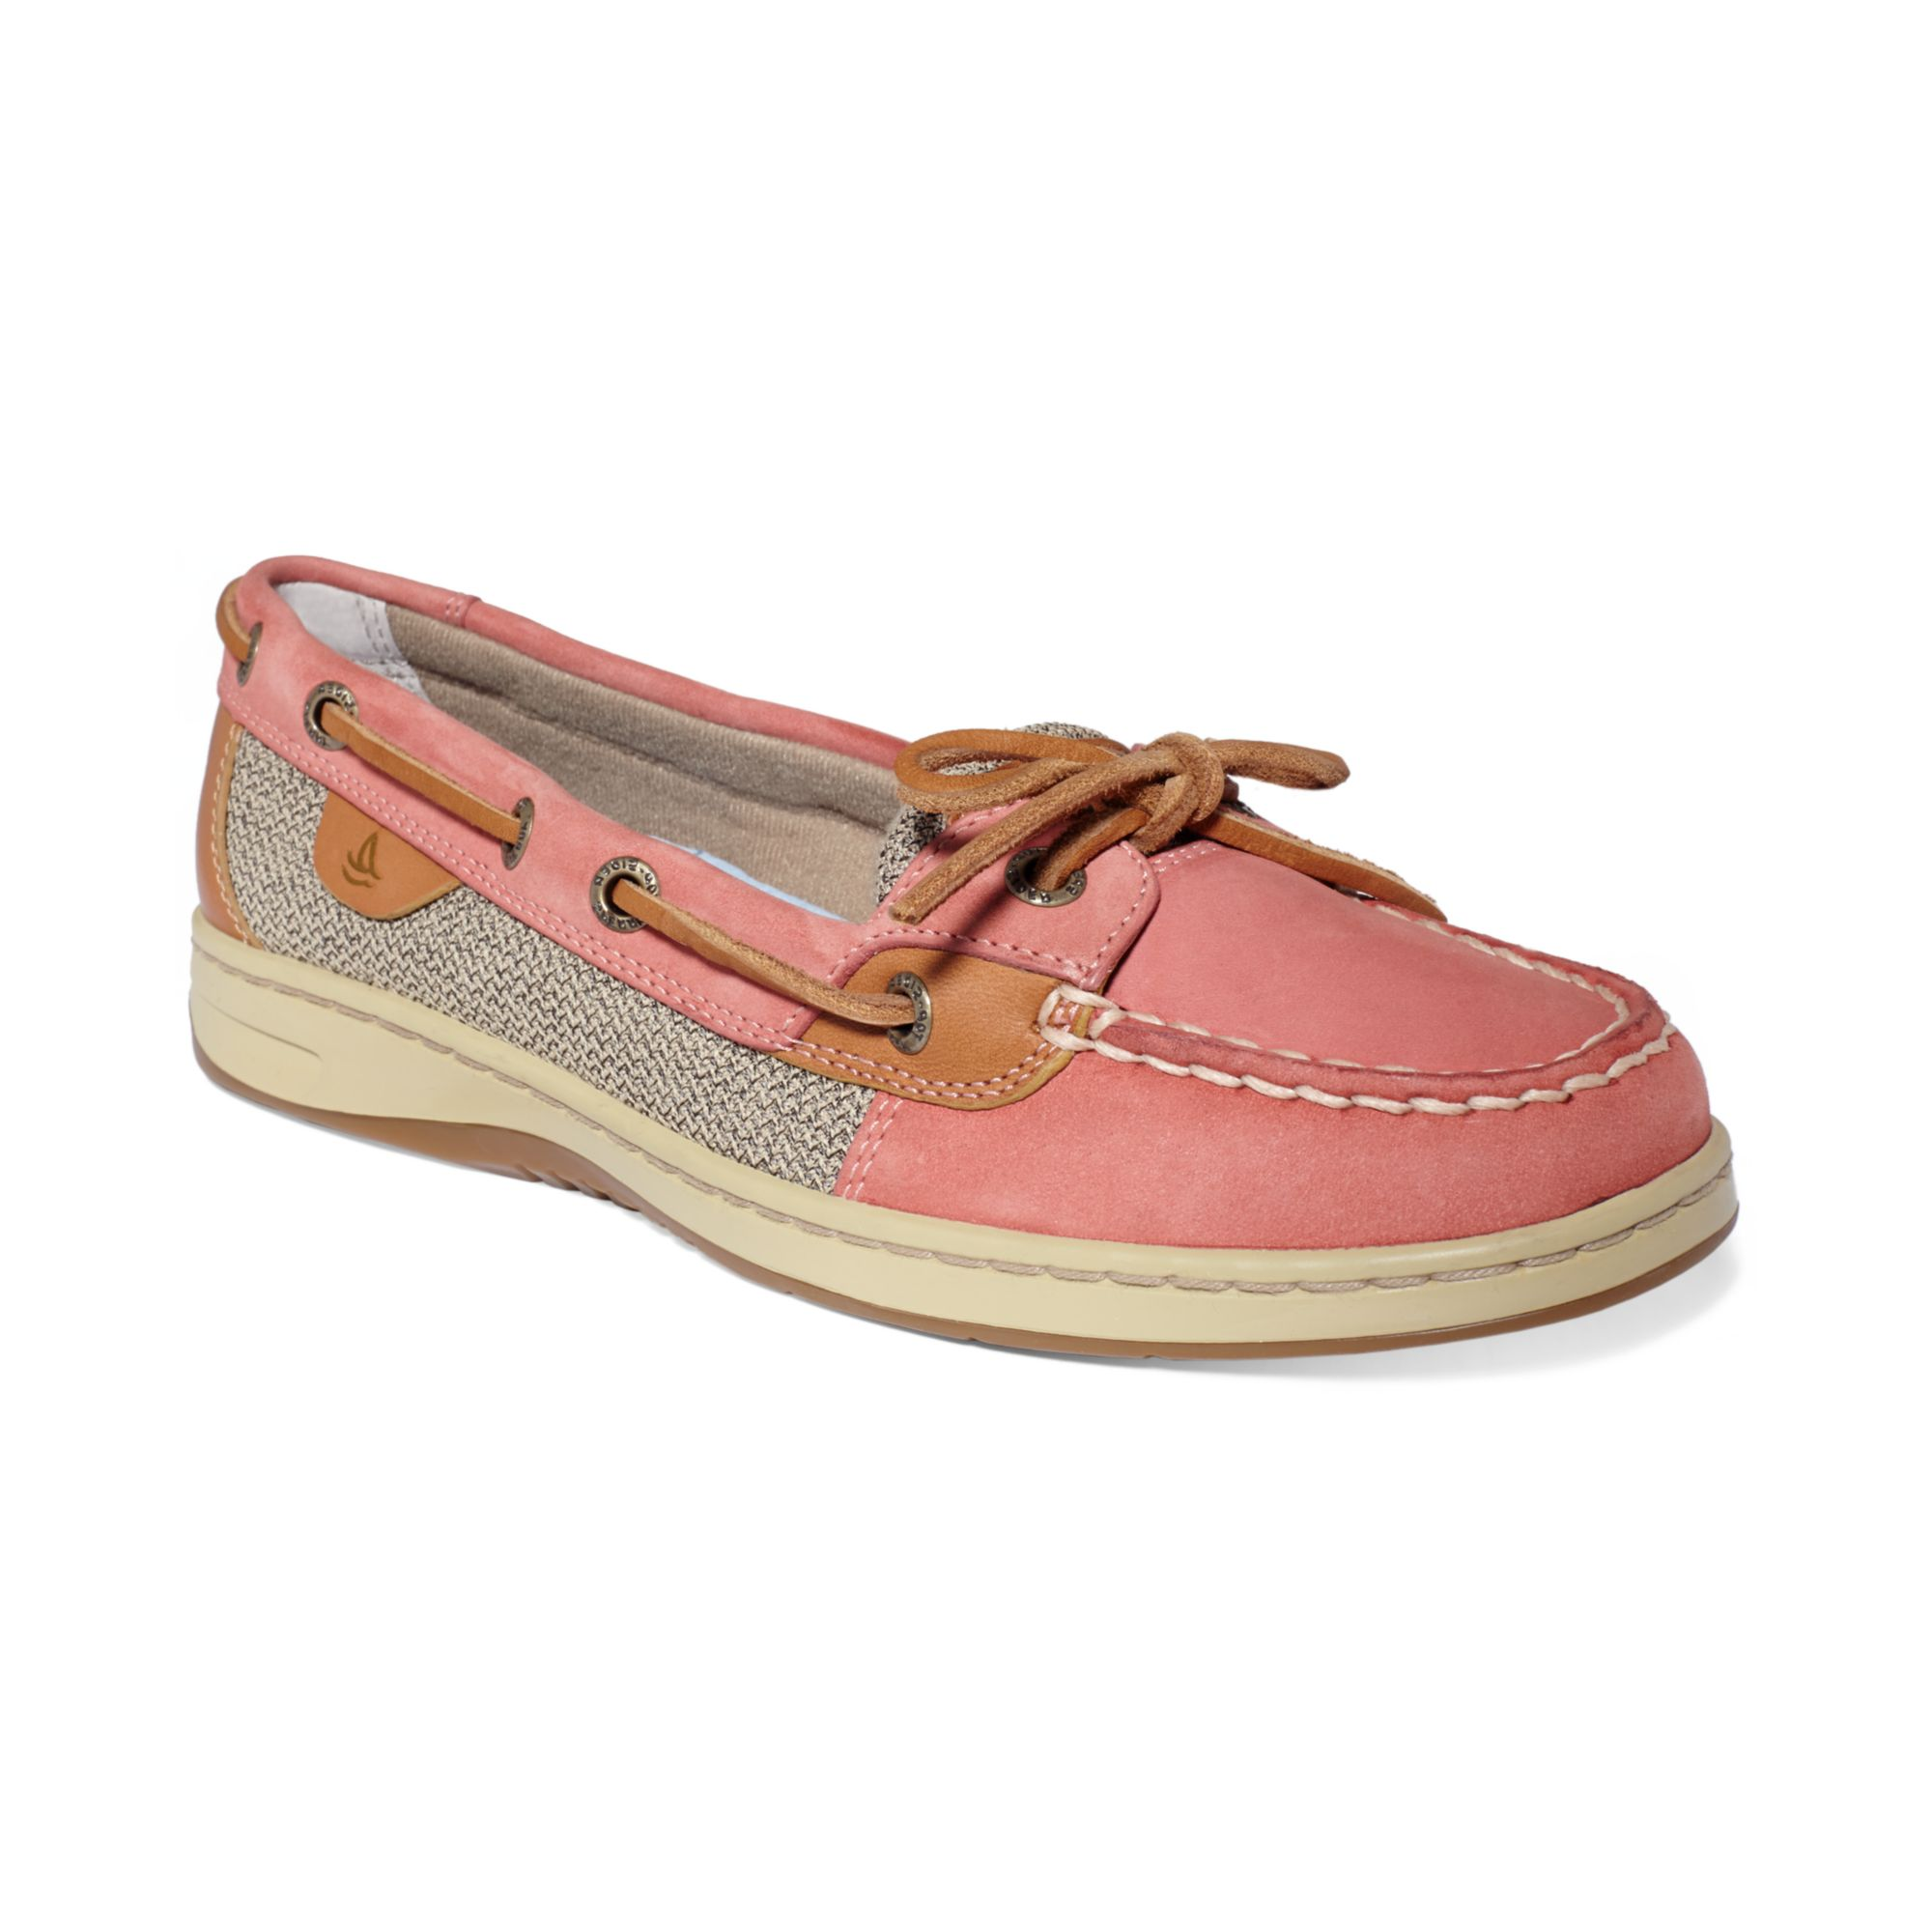 Lyst - Sperry Top-Sider Womens Angelfish Boat Shoes in Red 4399fc560